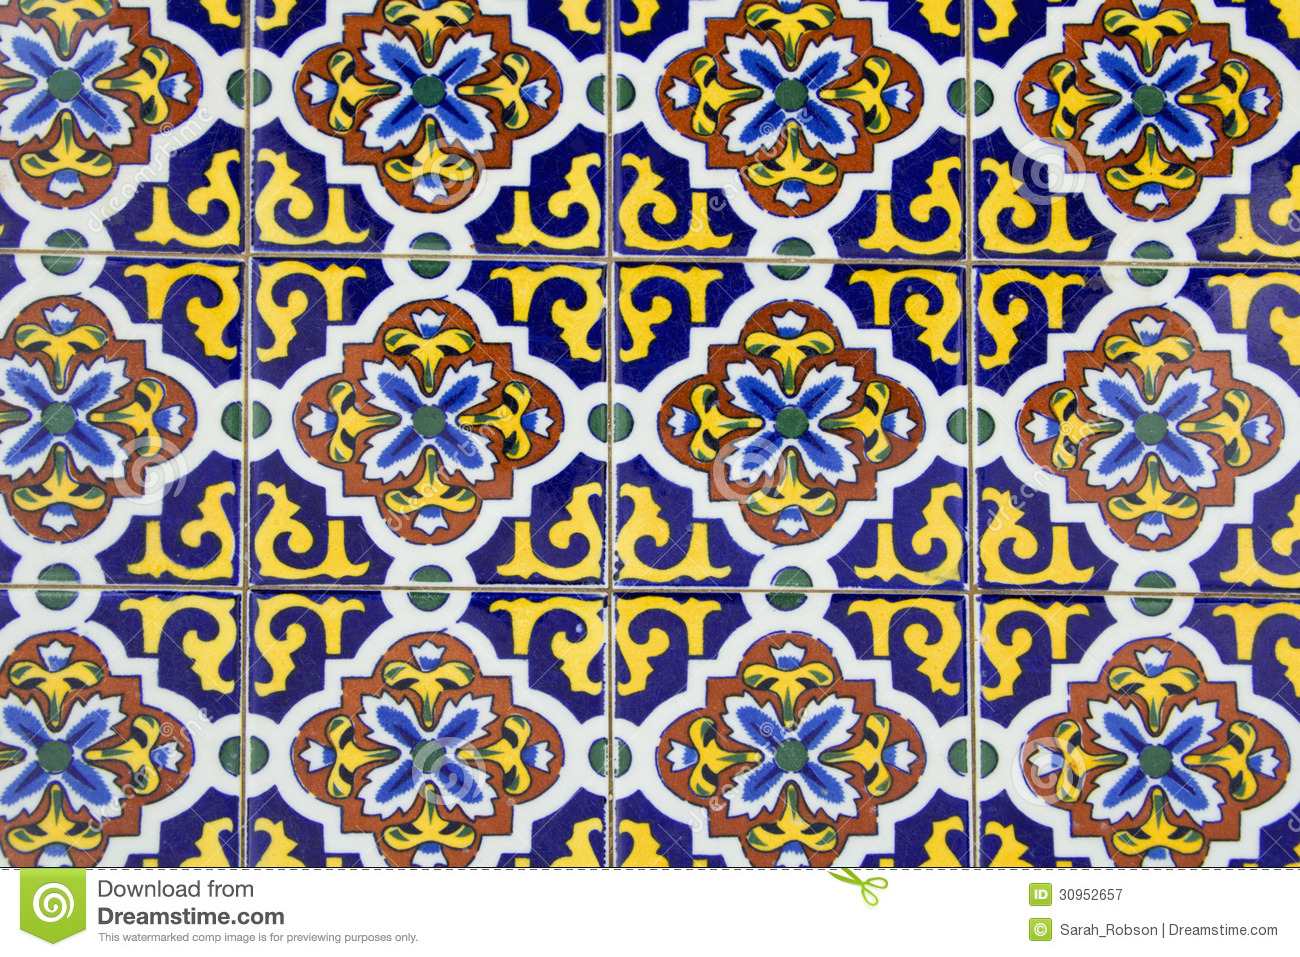 Old spanish ceramic tiles stock image image of vintage 30952657 old spanish ceramic tiles dailygadgetfo Choice Image